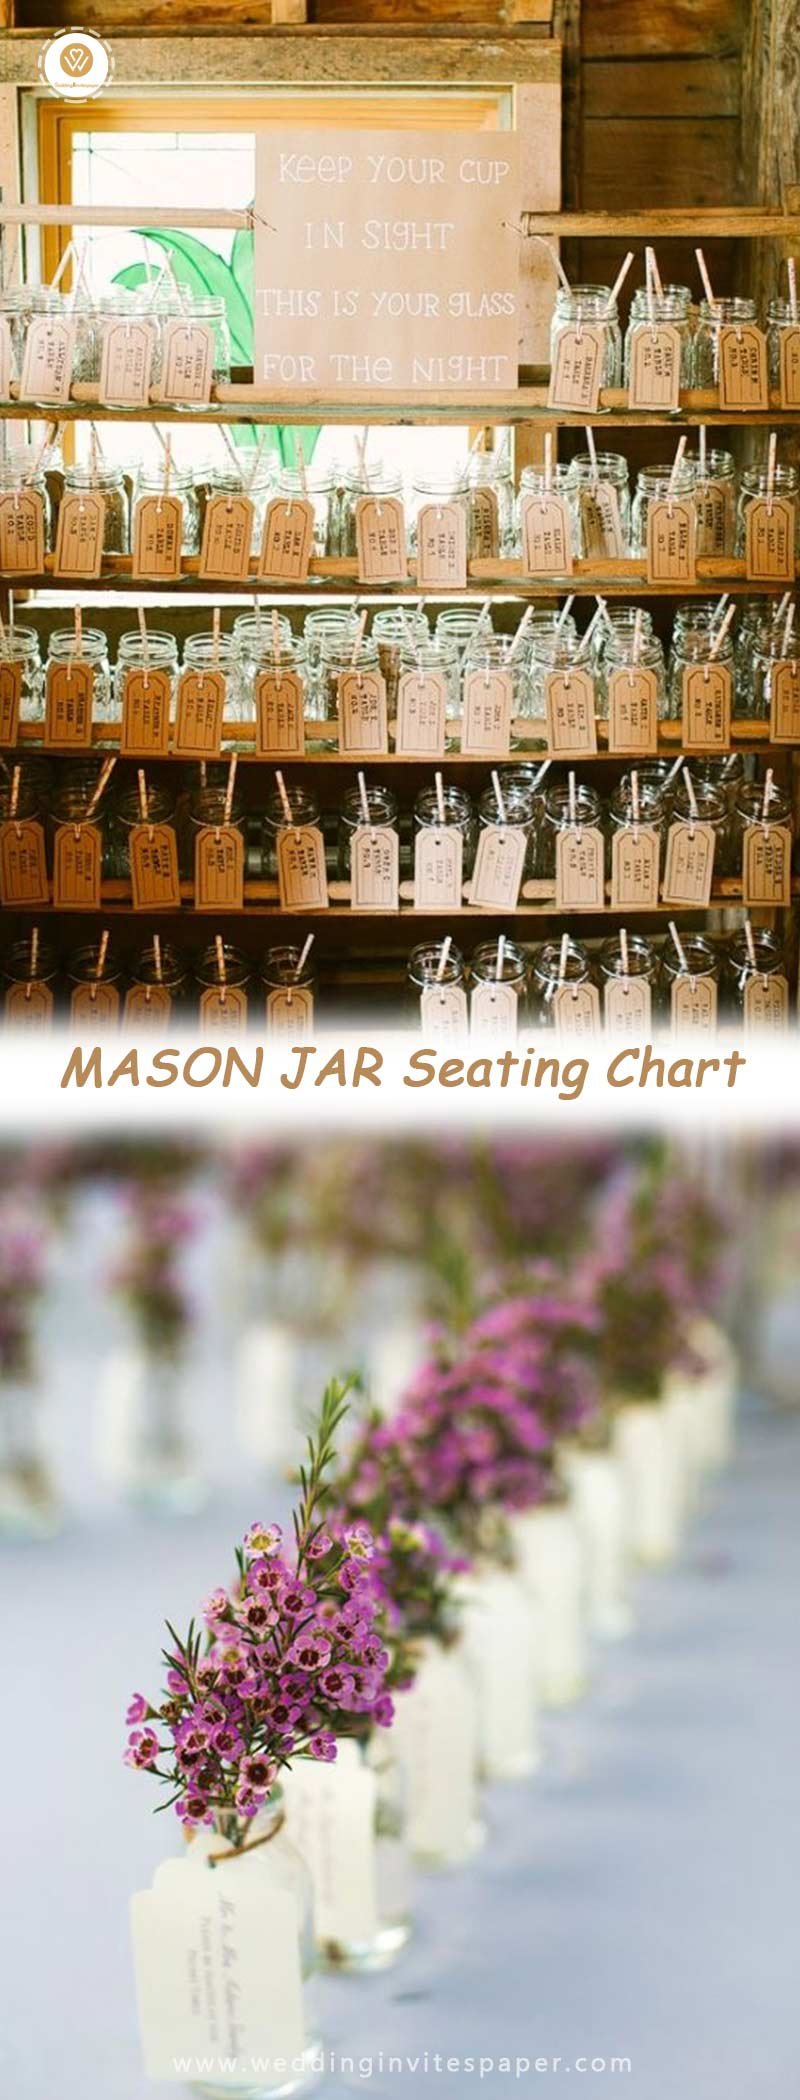 MASON-JAR-Seating-Chart.jpg